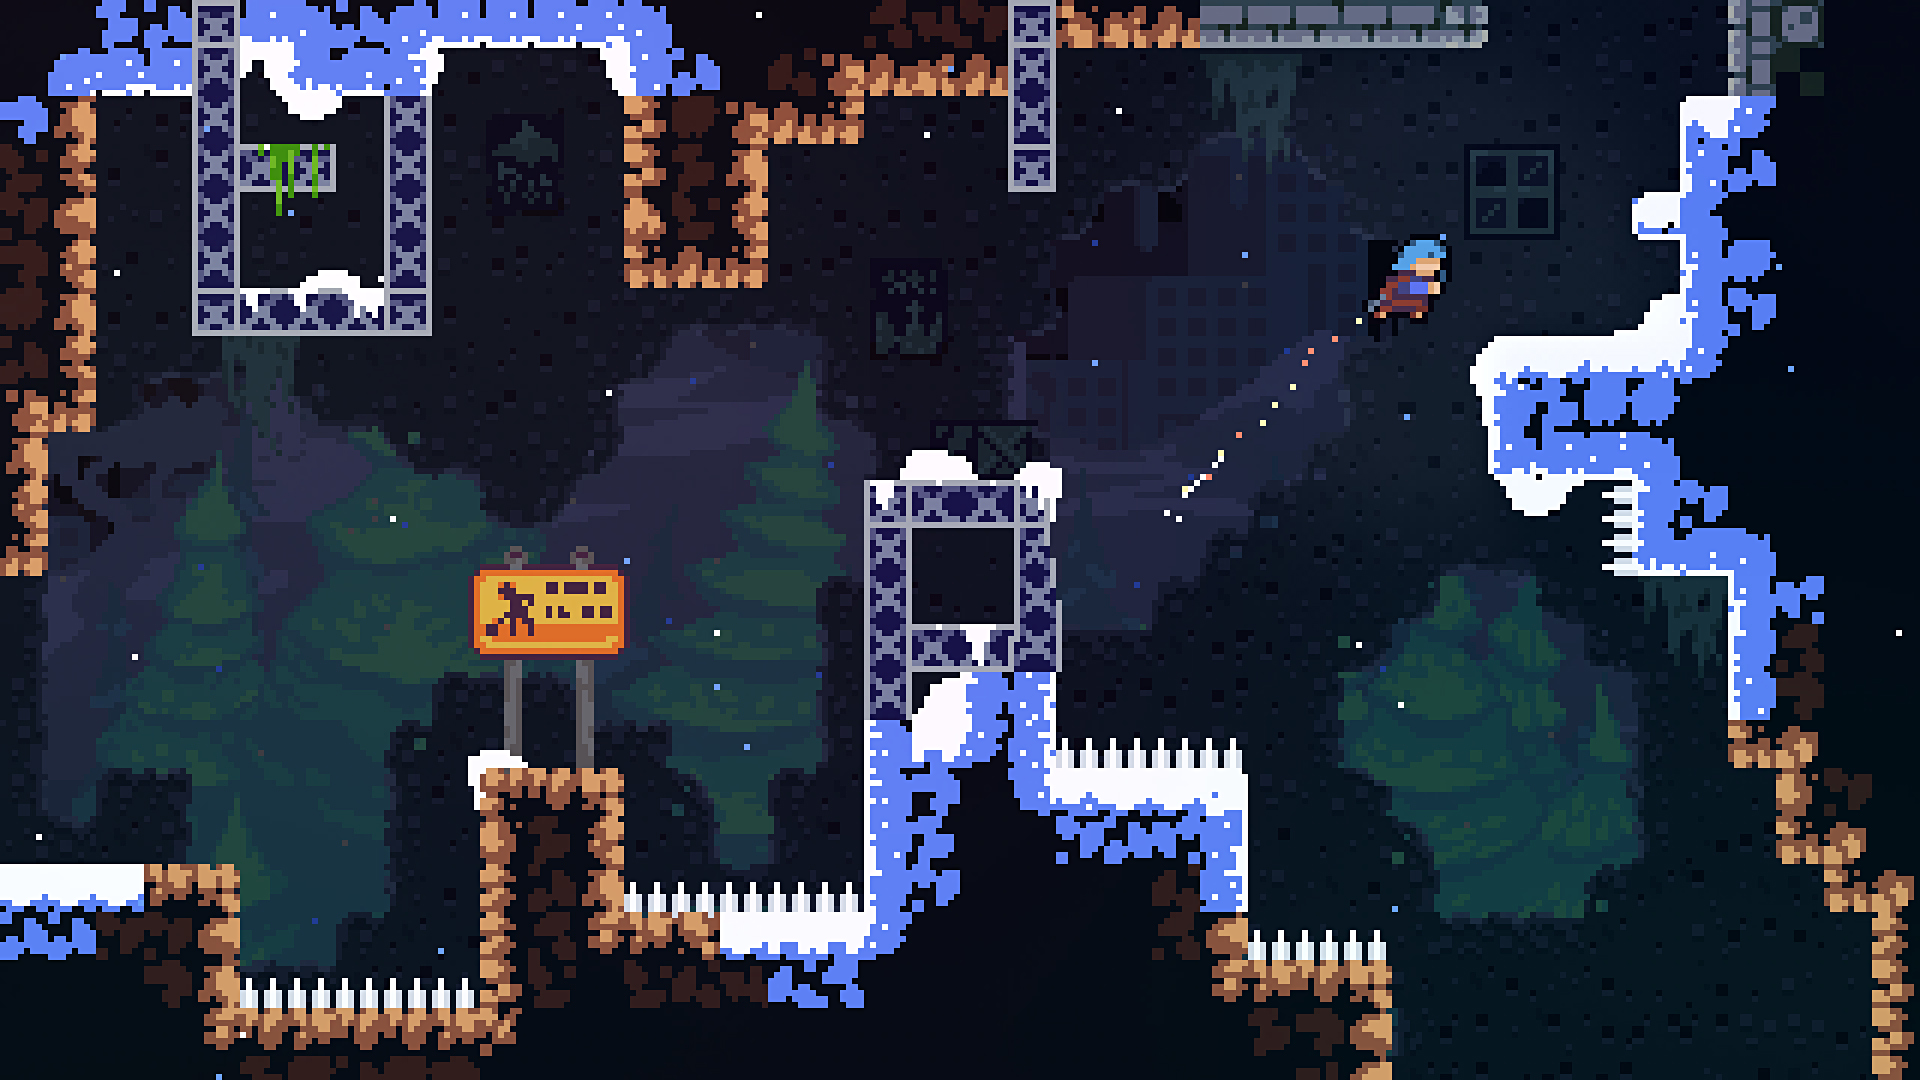 Celeste's Video Game Soundtrack Is Perfect Background Music For Getting Work Done